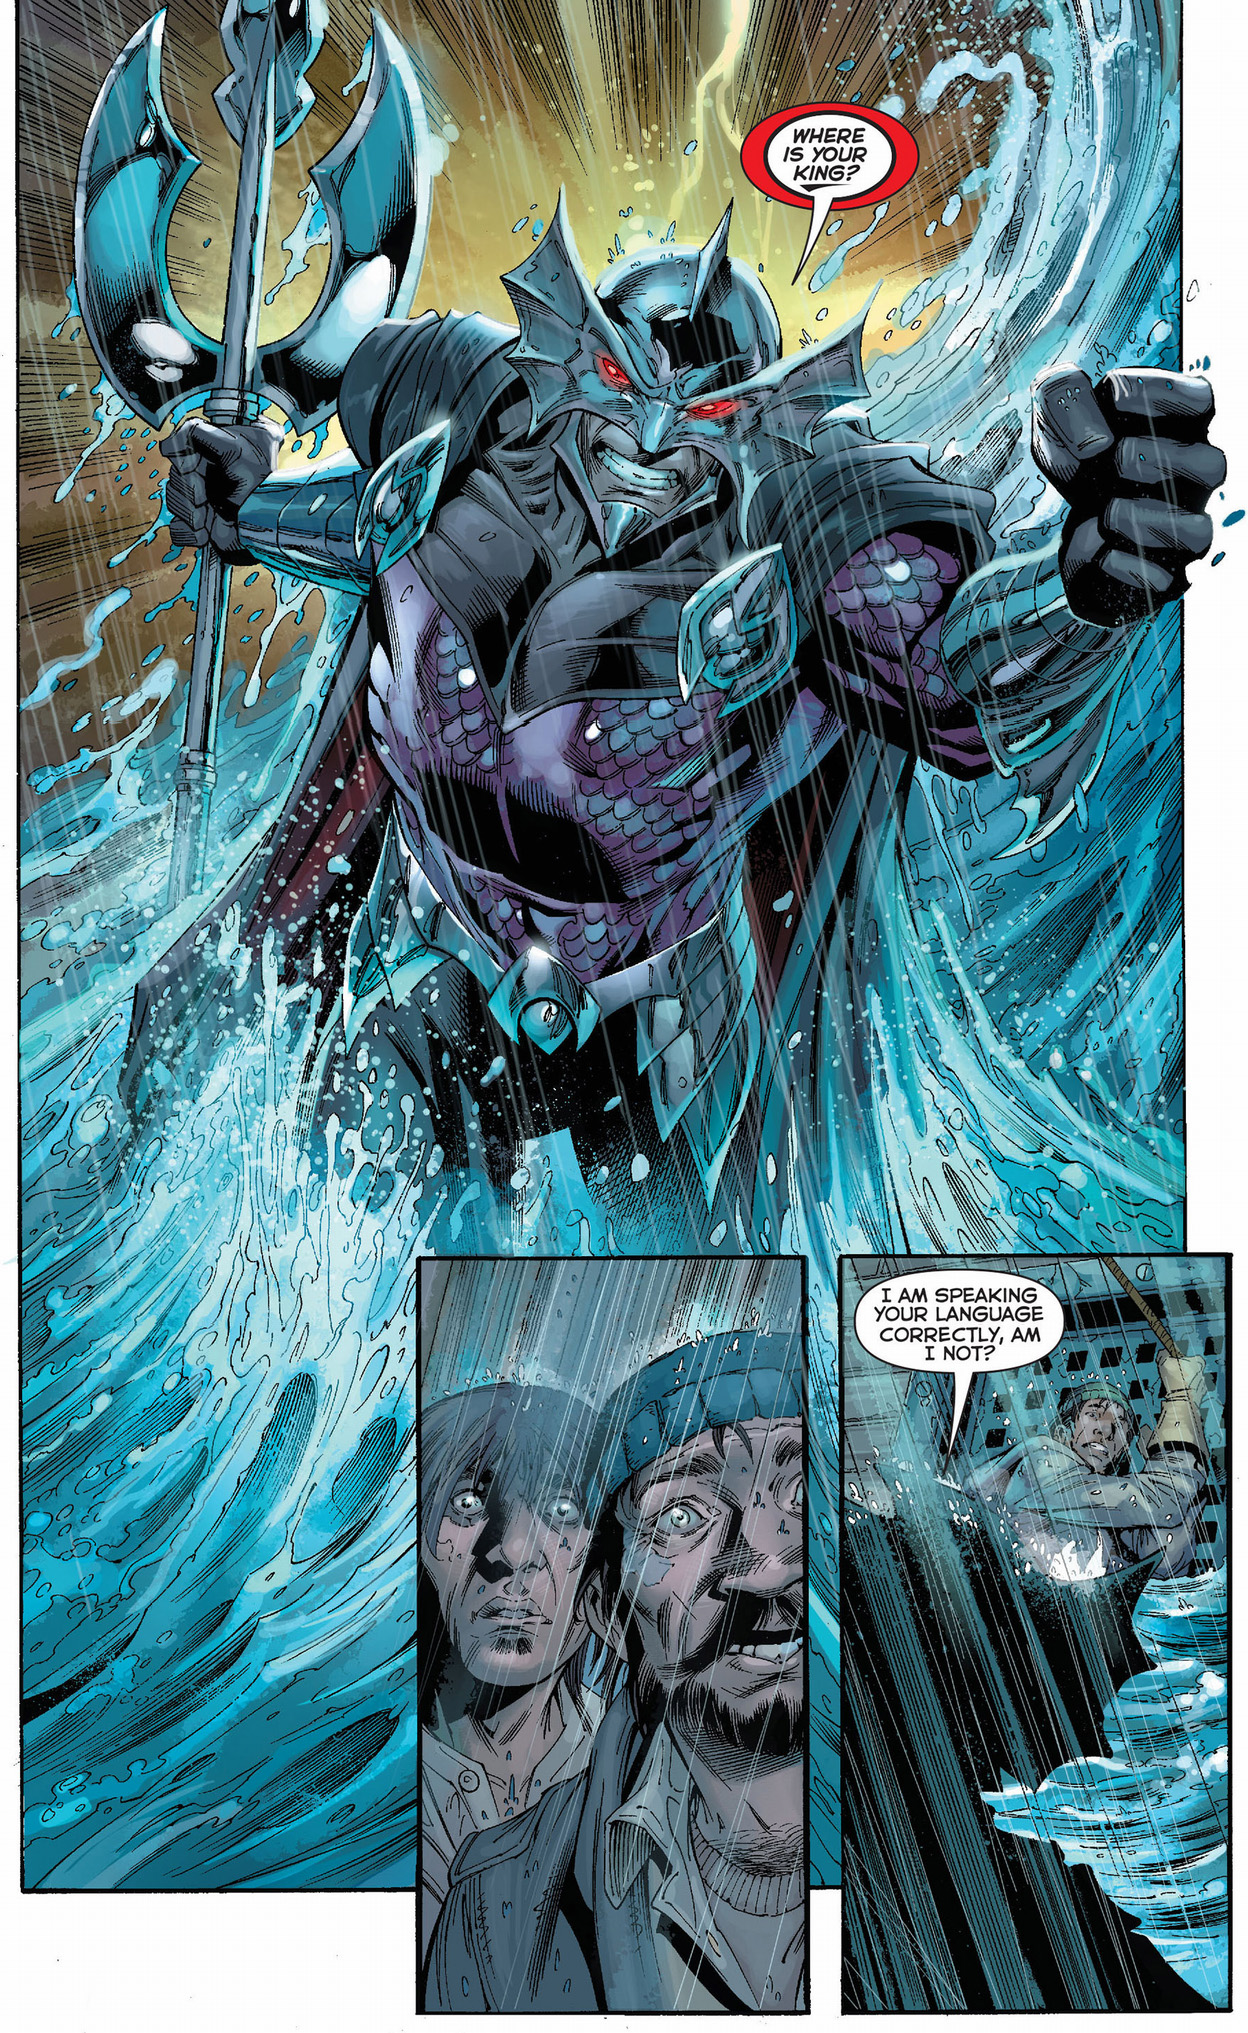 ocean master interacts with humans